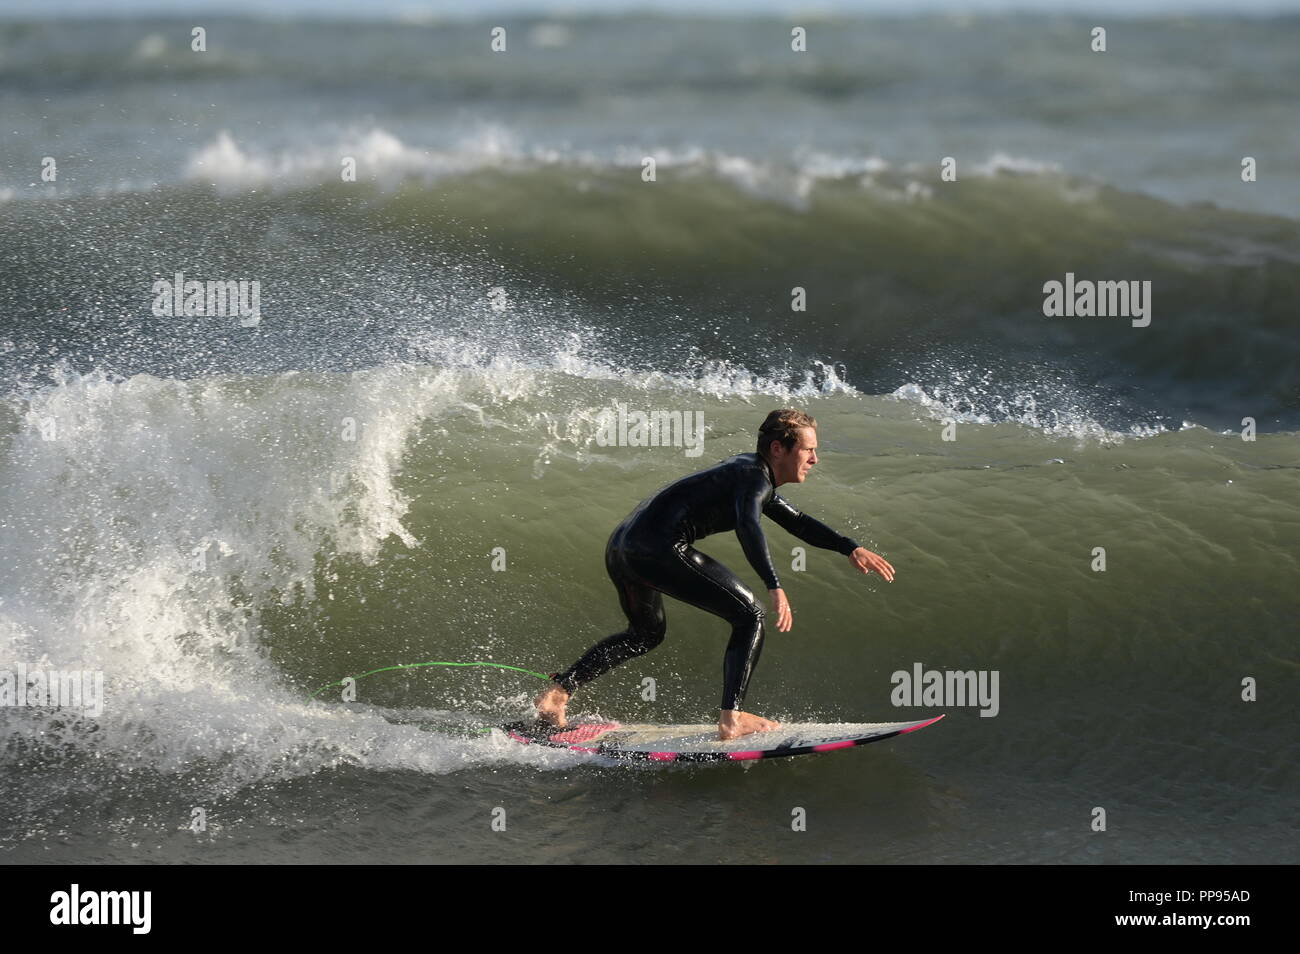 Surfing on the Gower - Stock Image